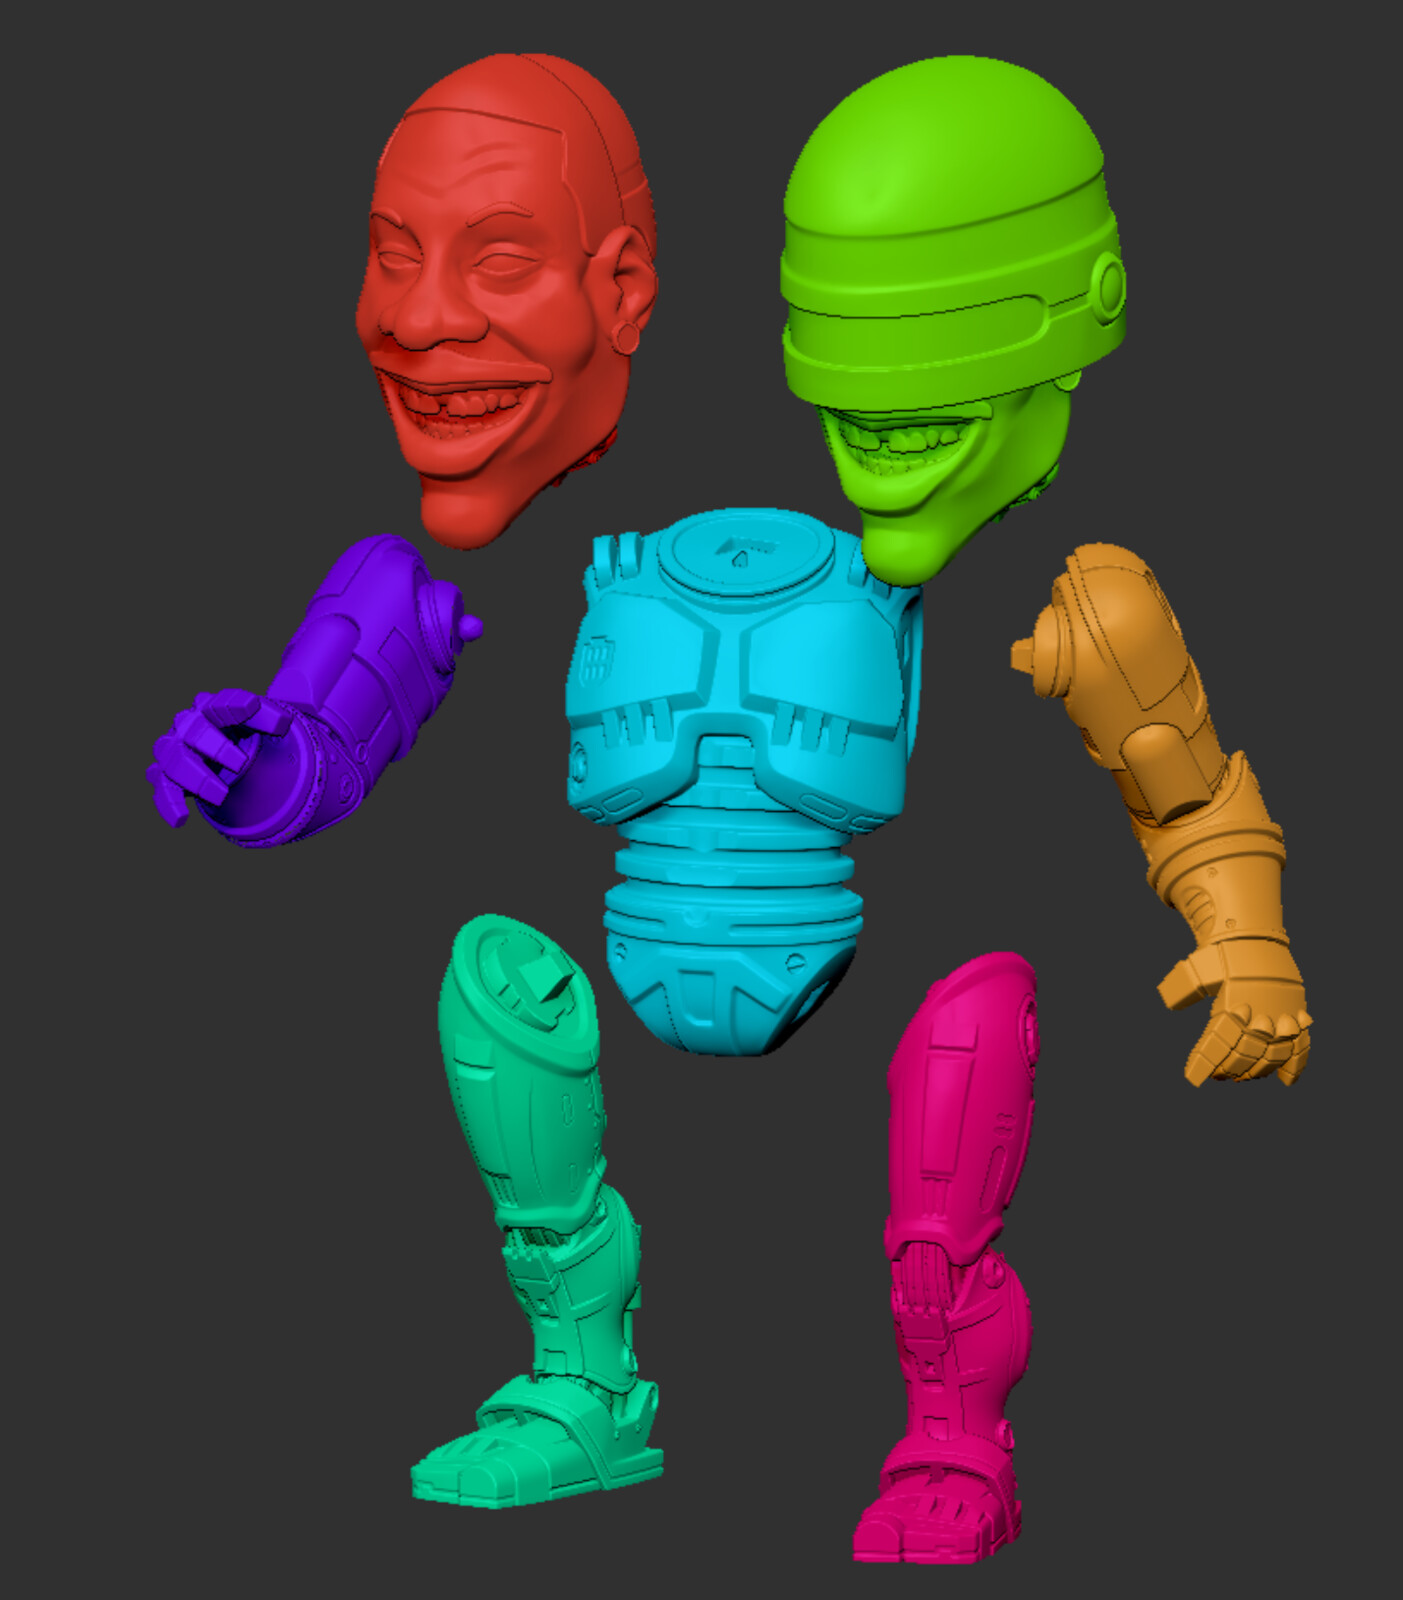 Zbrush Parts for Print